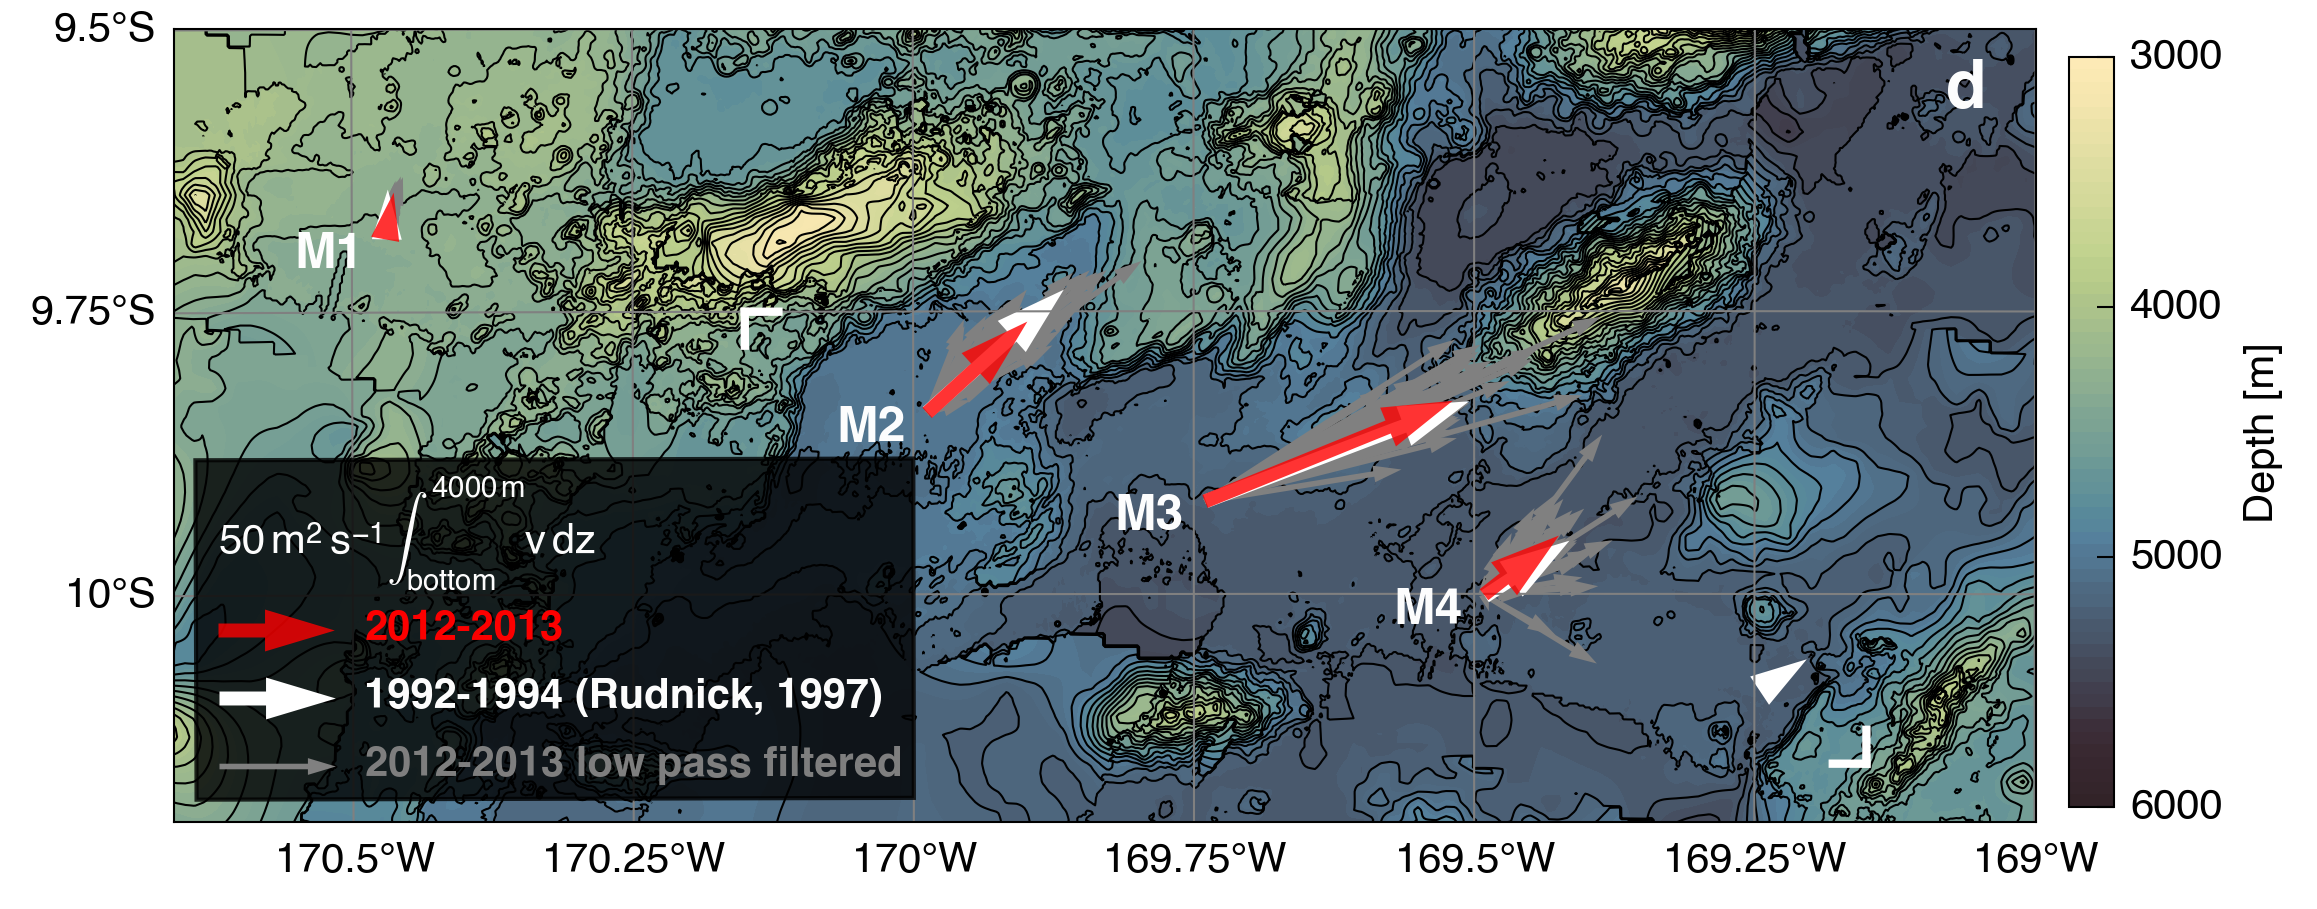 Depth-integrated velocities from our long term mooring array (red arrows) deployed at the exact same location as moorings in the early 1990s (white arrows,  Rudnick, 1997 )